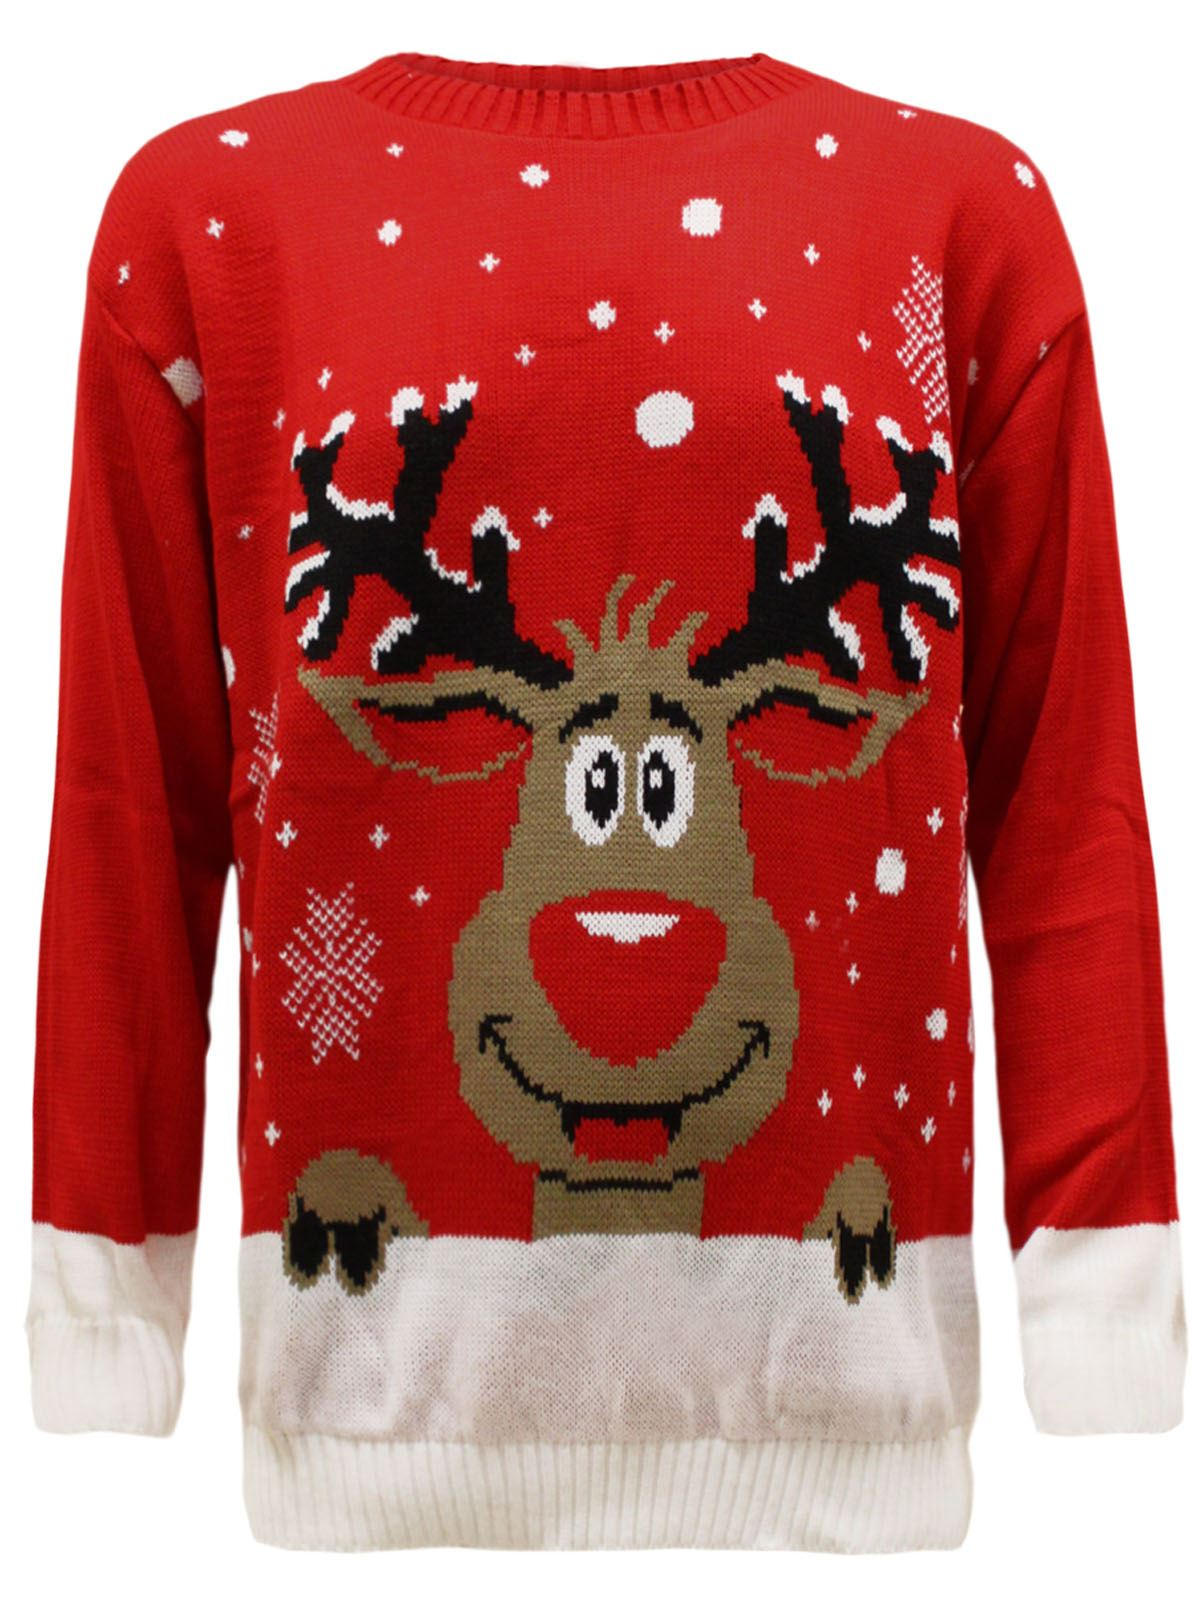 Plus Size Christmas Jumpers Ladies' 24, 26, 28, 30, 32 Men's XXXXL, XXXXXL, 4XL, 5XL, 6XL. We do Christmas jumpers in plus sizes as high as you need. We're the only Christmas jumper company to offer these sizes and it's because our jumpers are handmade.